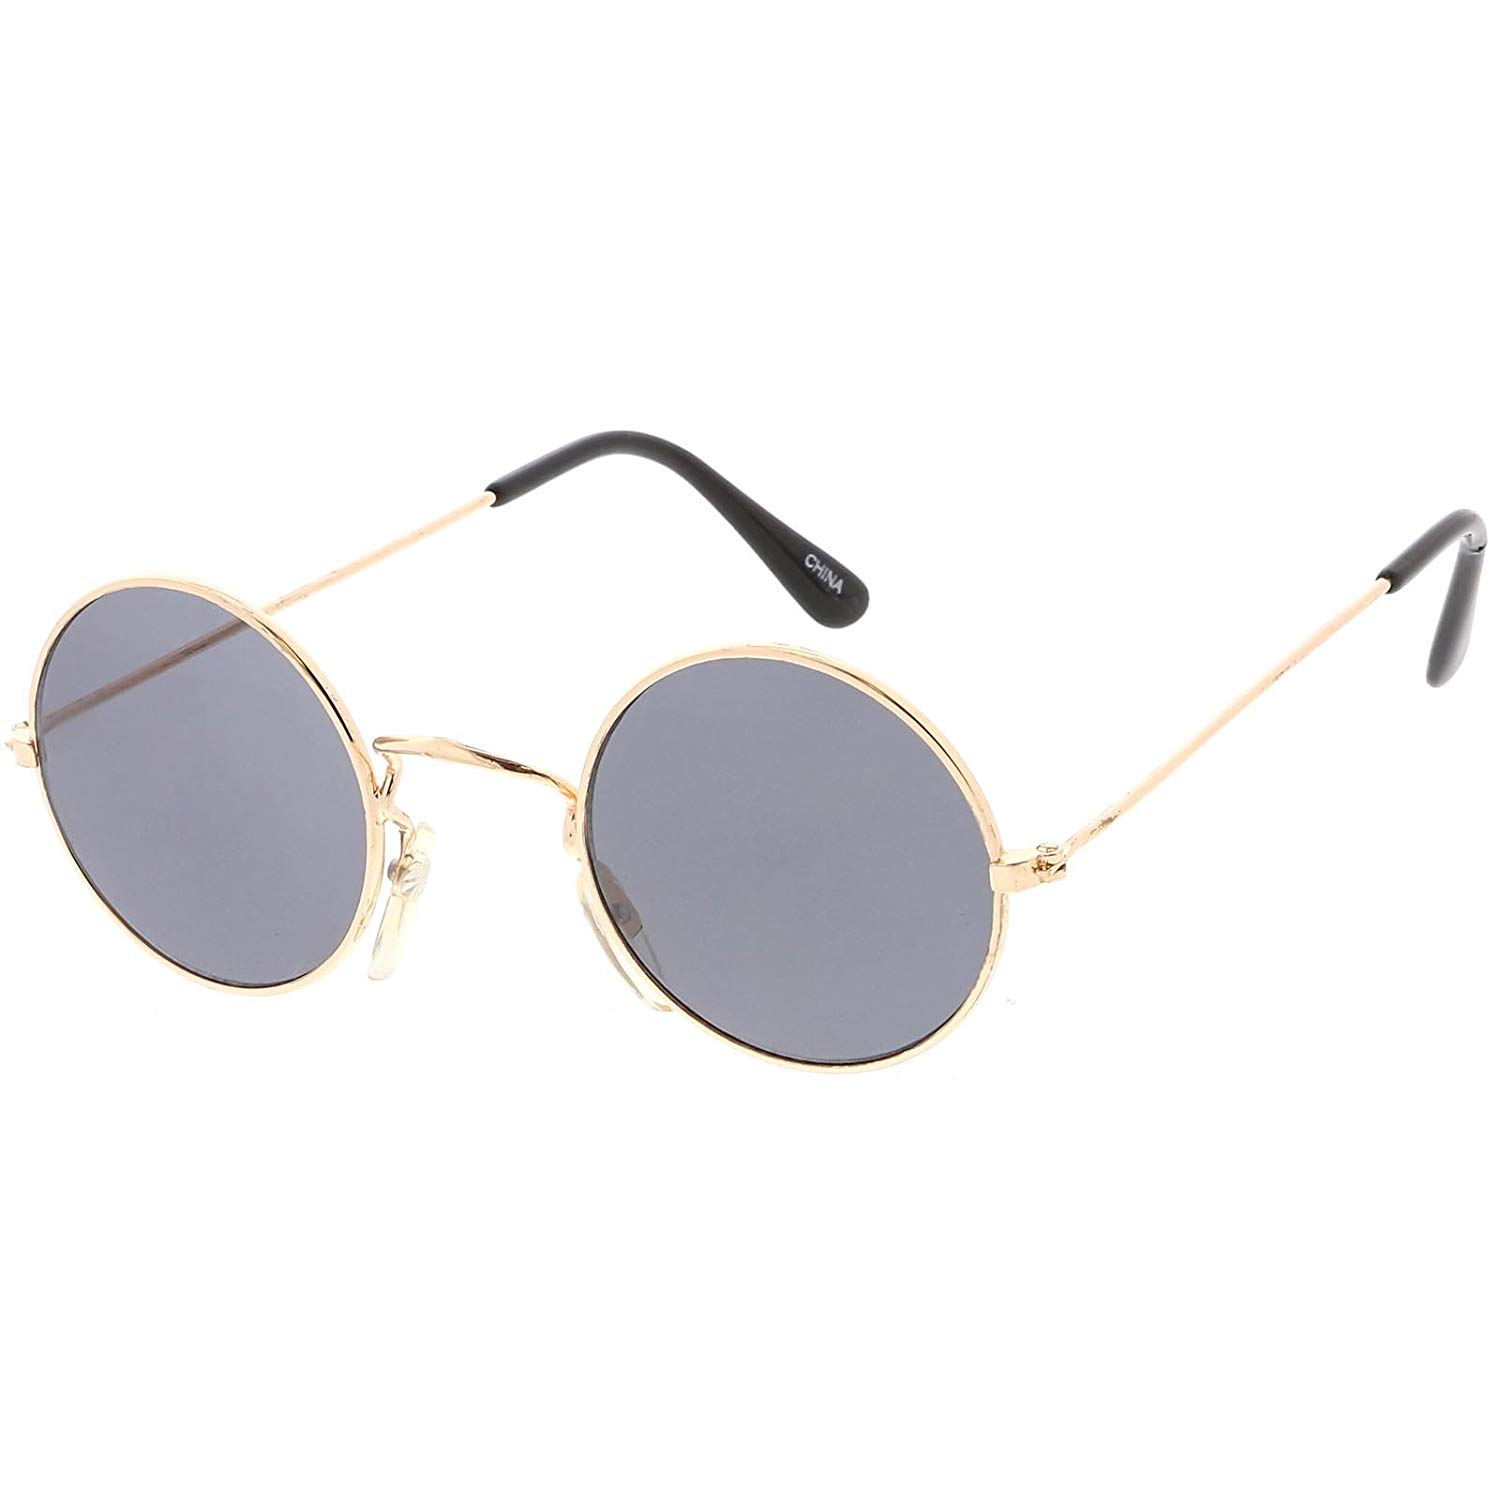 87c163a2a Get Quotations · sunglassLA - True Vintage Small Thin Frame Circle Sunglasses  Neutral Colored Lens 42mm